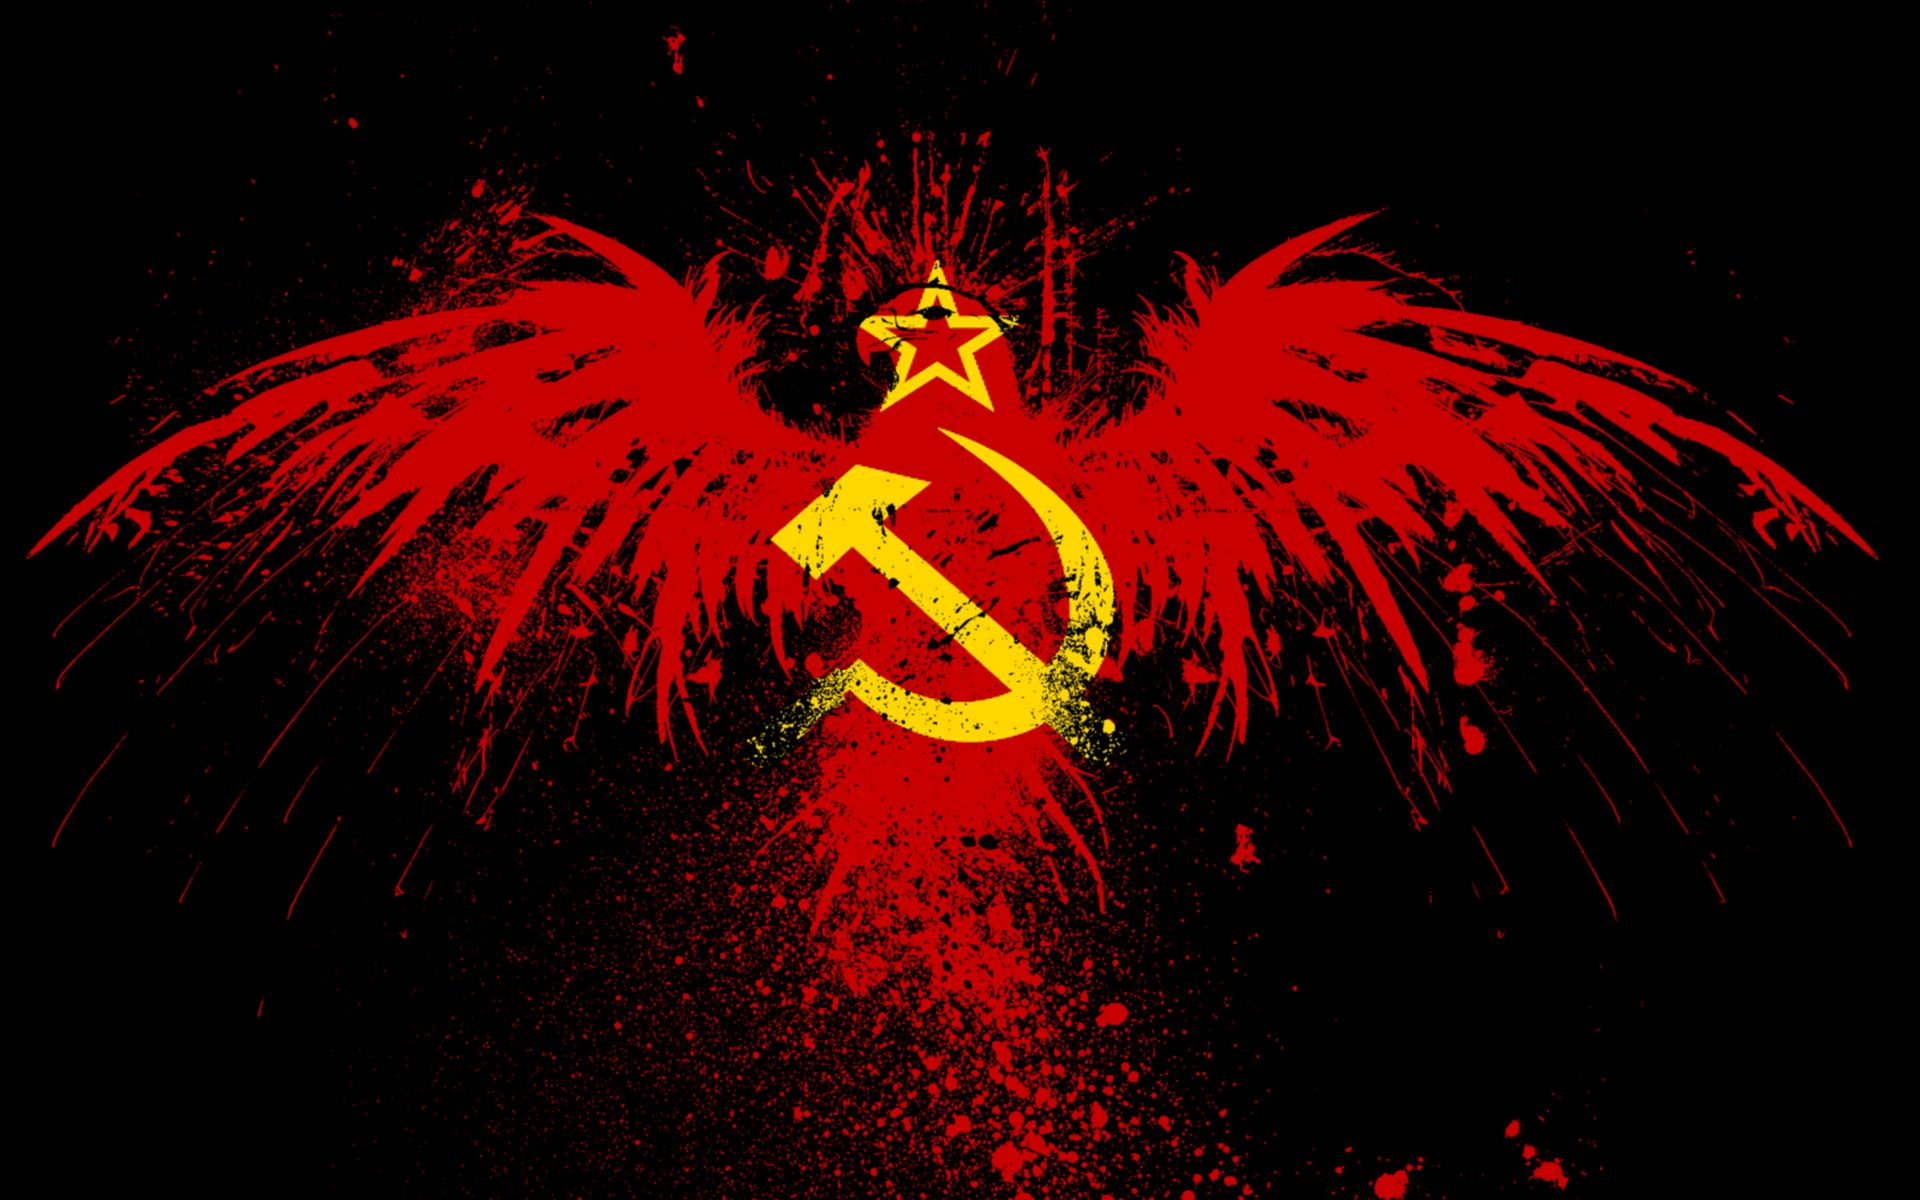 Hammer And Sickle By Lolmanic45 On Deviantart Hammer And Sickle Soviet Union Space Pictures Hammer and sickle hd wallpaper